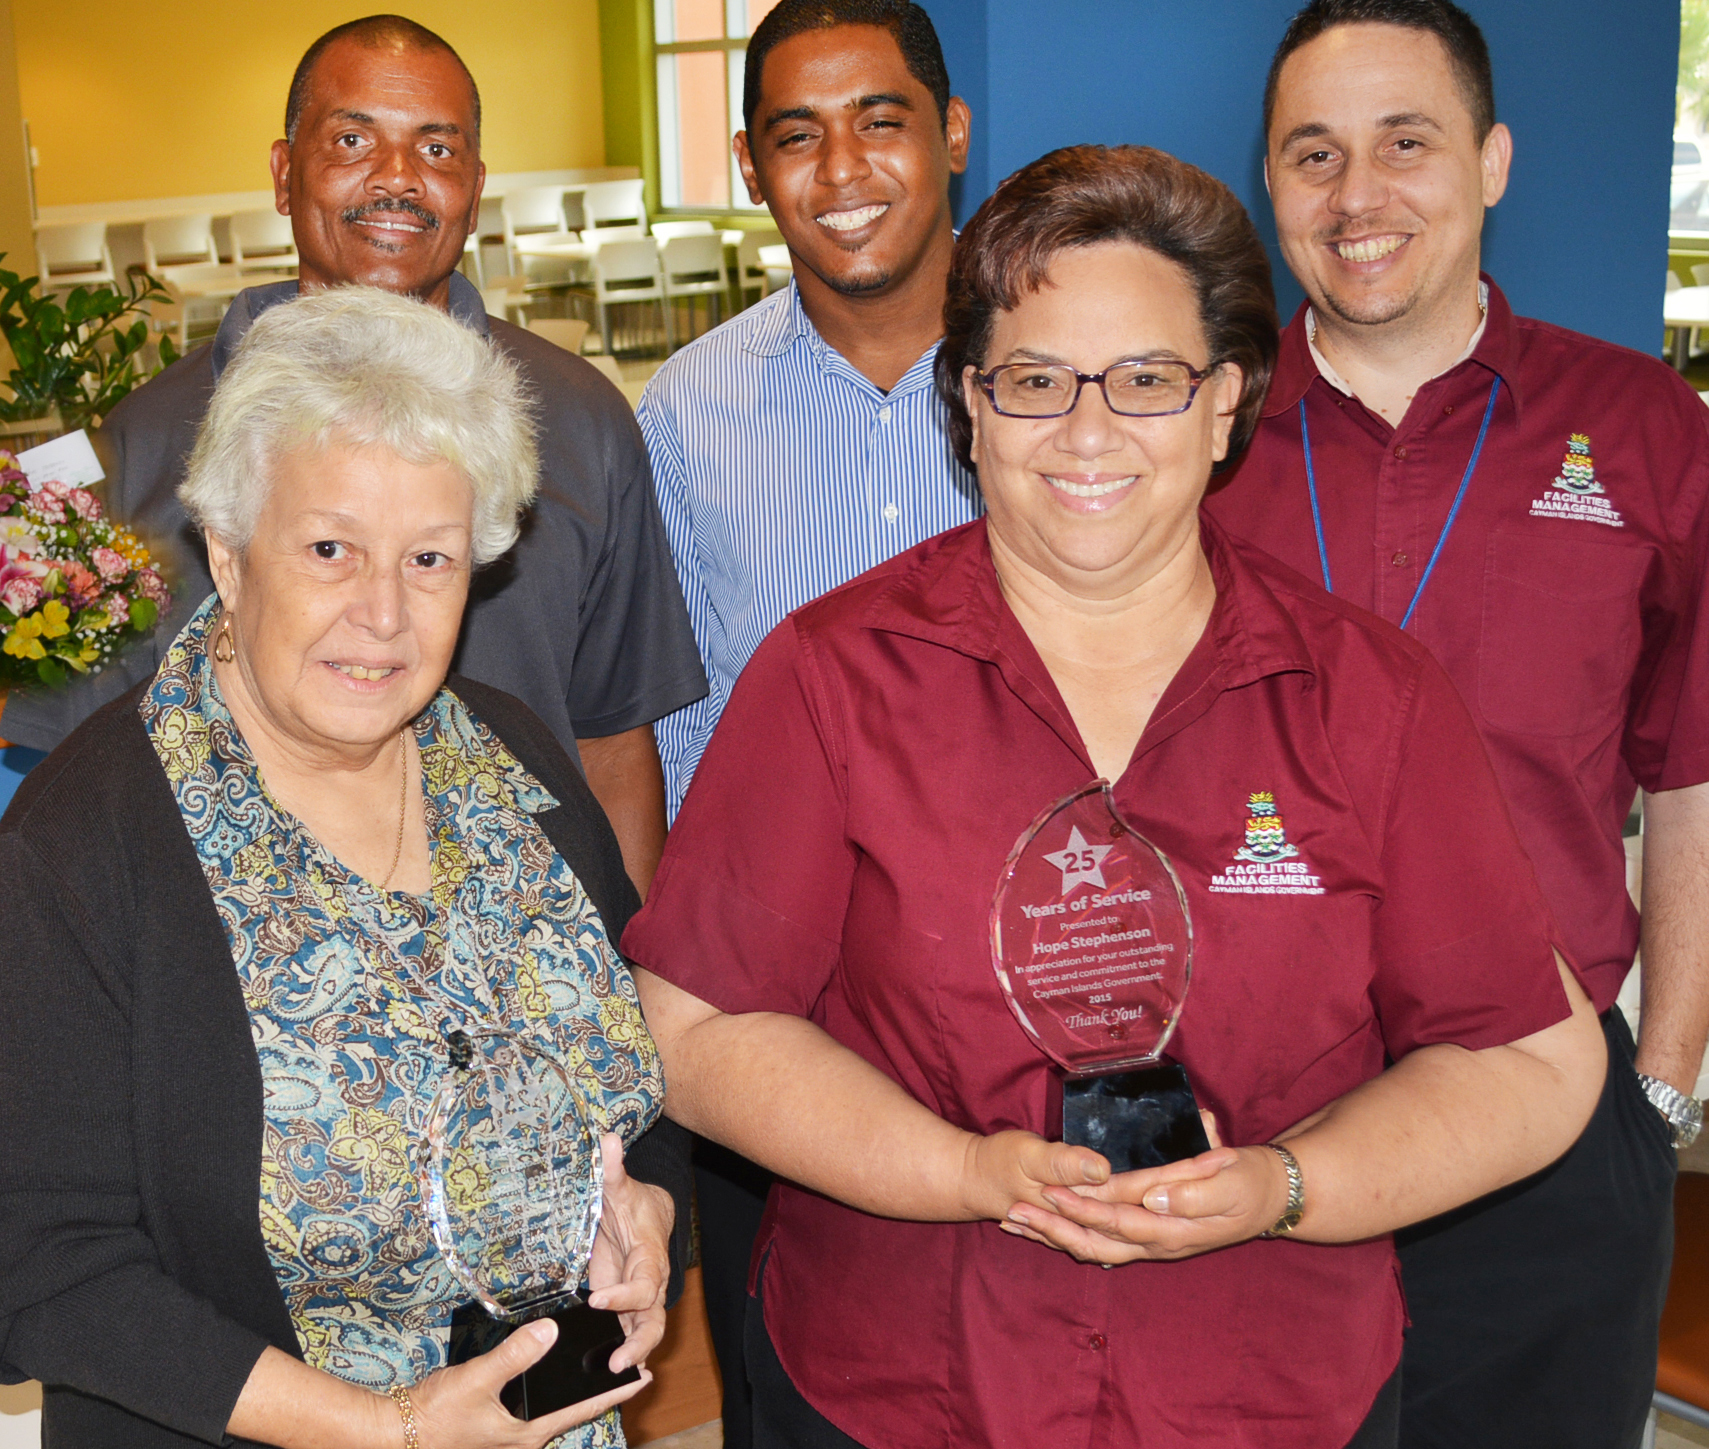 Ms Beatrice (left) and Ms Hope, with their 25-year service awards, are seen with (back row, from left) Mr. Fisher 'Porter' Wright, Mr. Troy Whorms and Mr. Adam McLaren, staff members of the Facilities Management Department, which oversees GAB and other government properties.